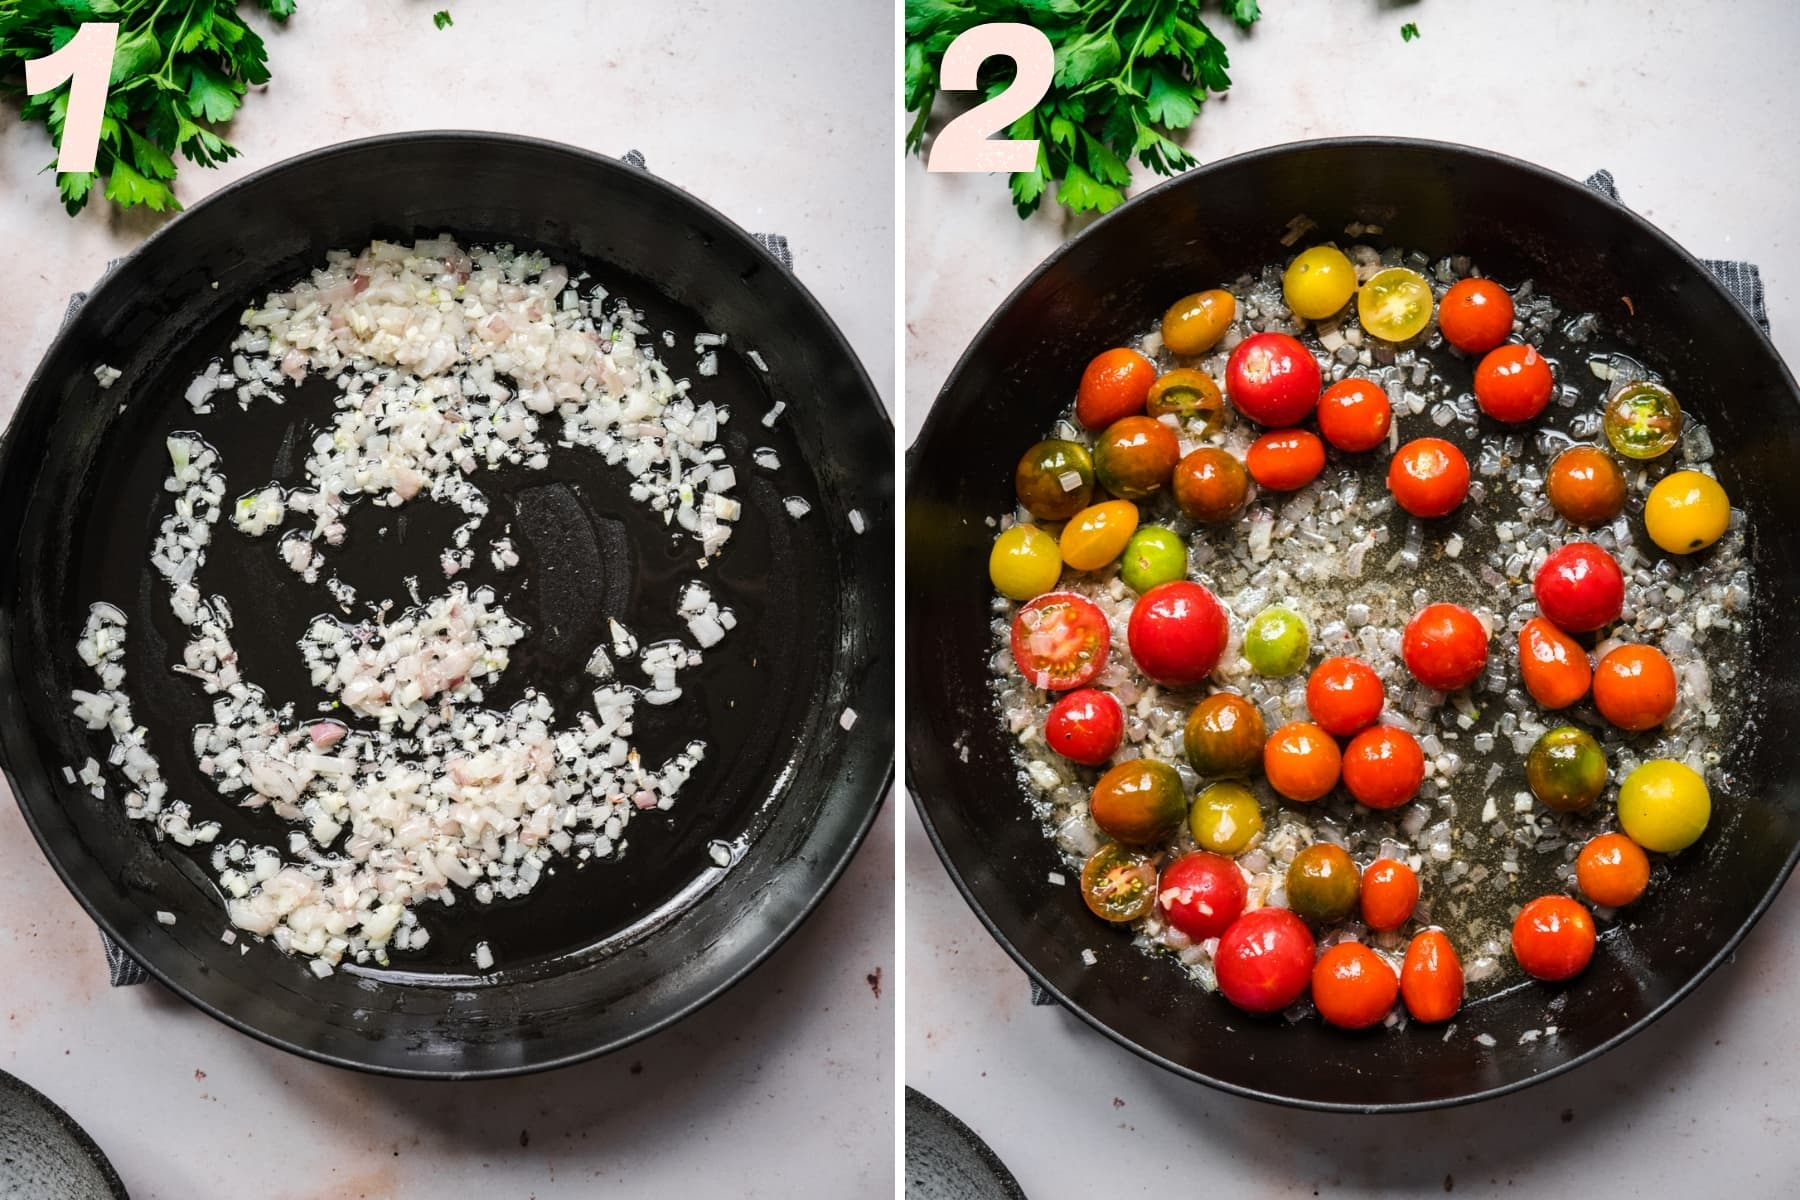 before and after adding whole cherry tomatoes to sautéed garlic and shallots in skillet.